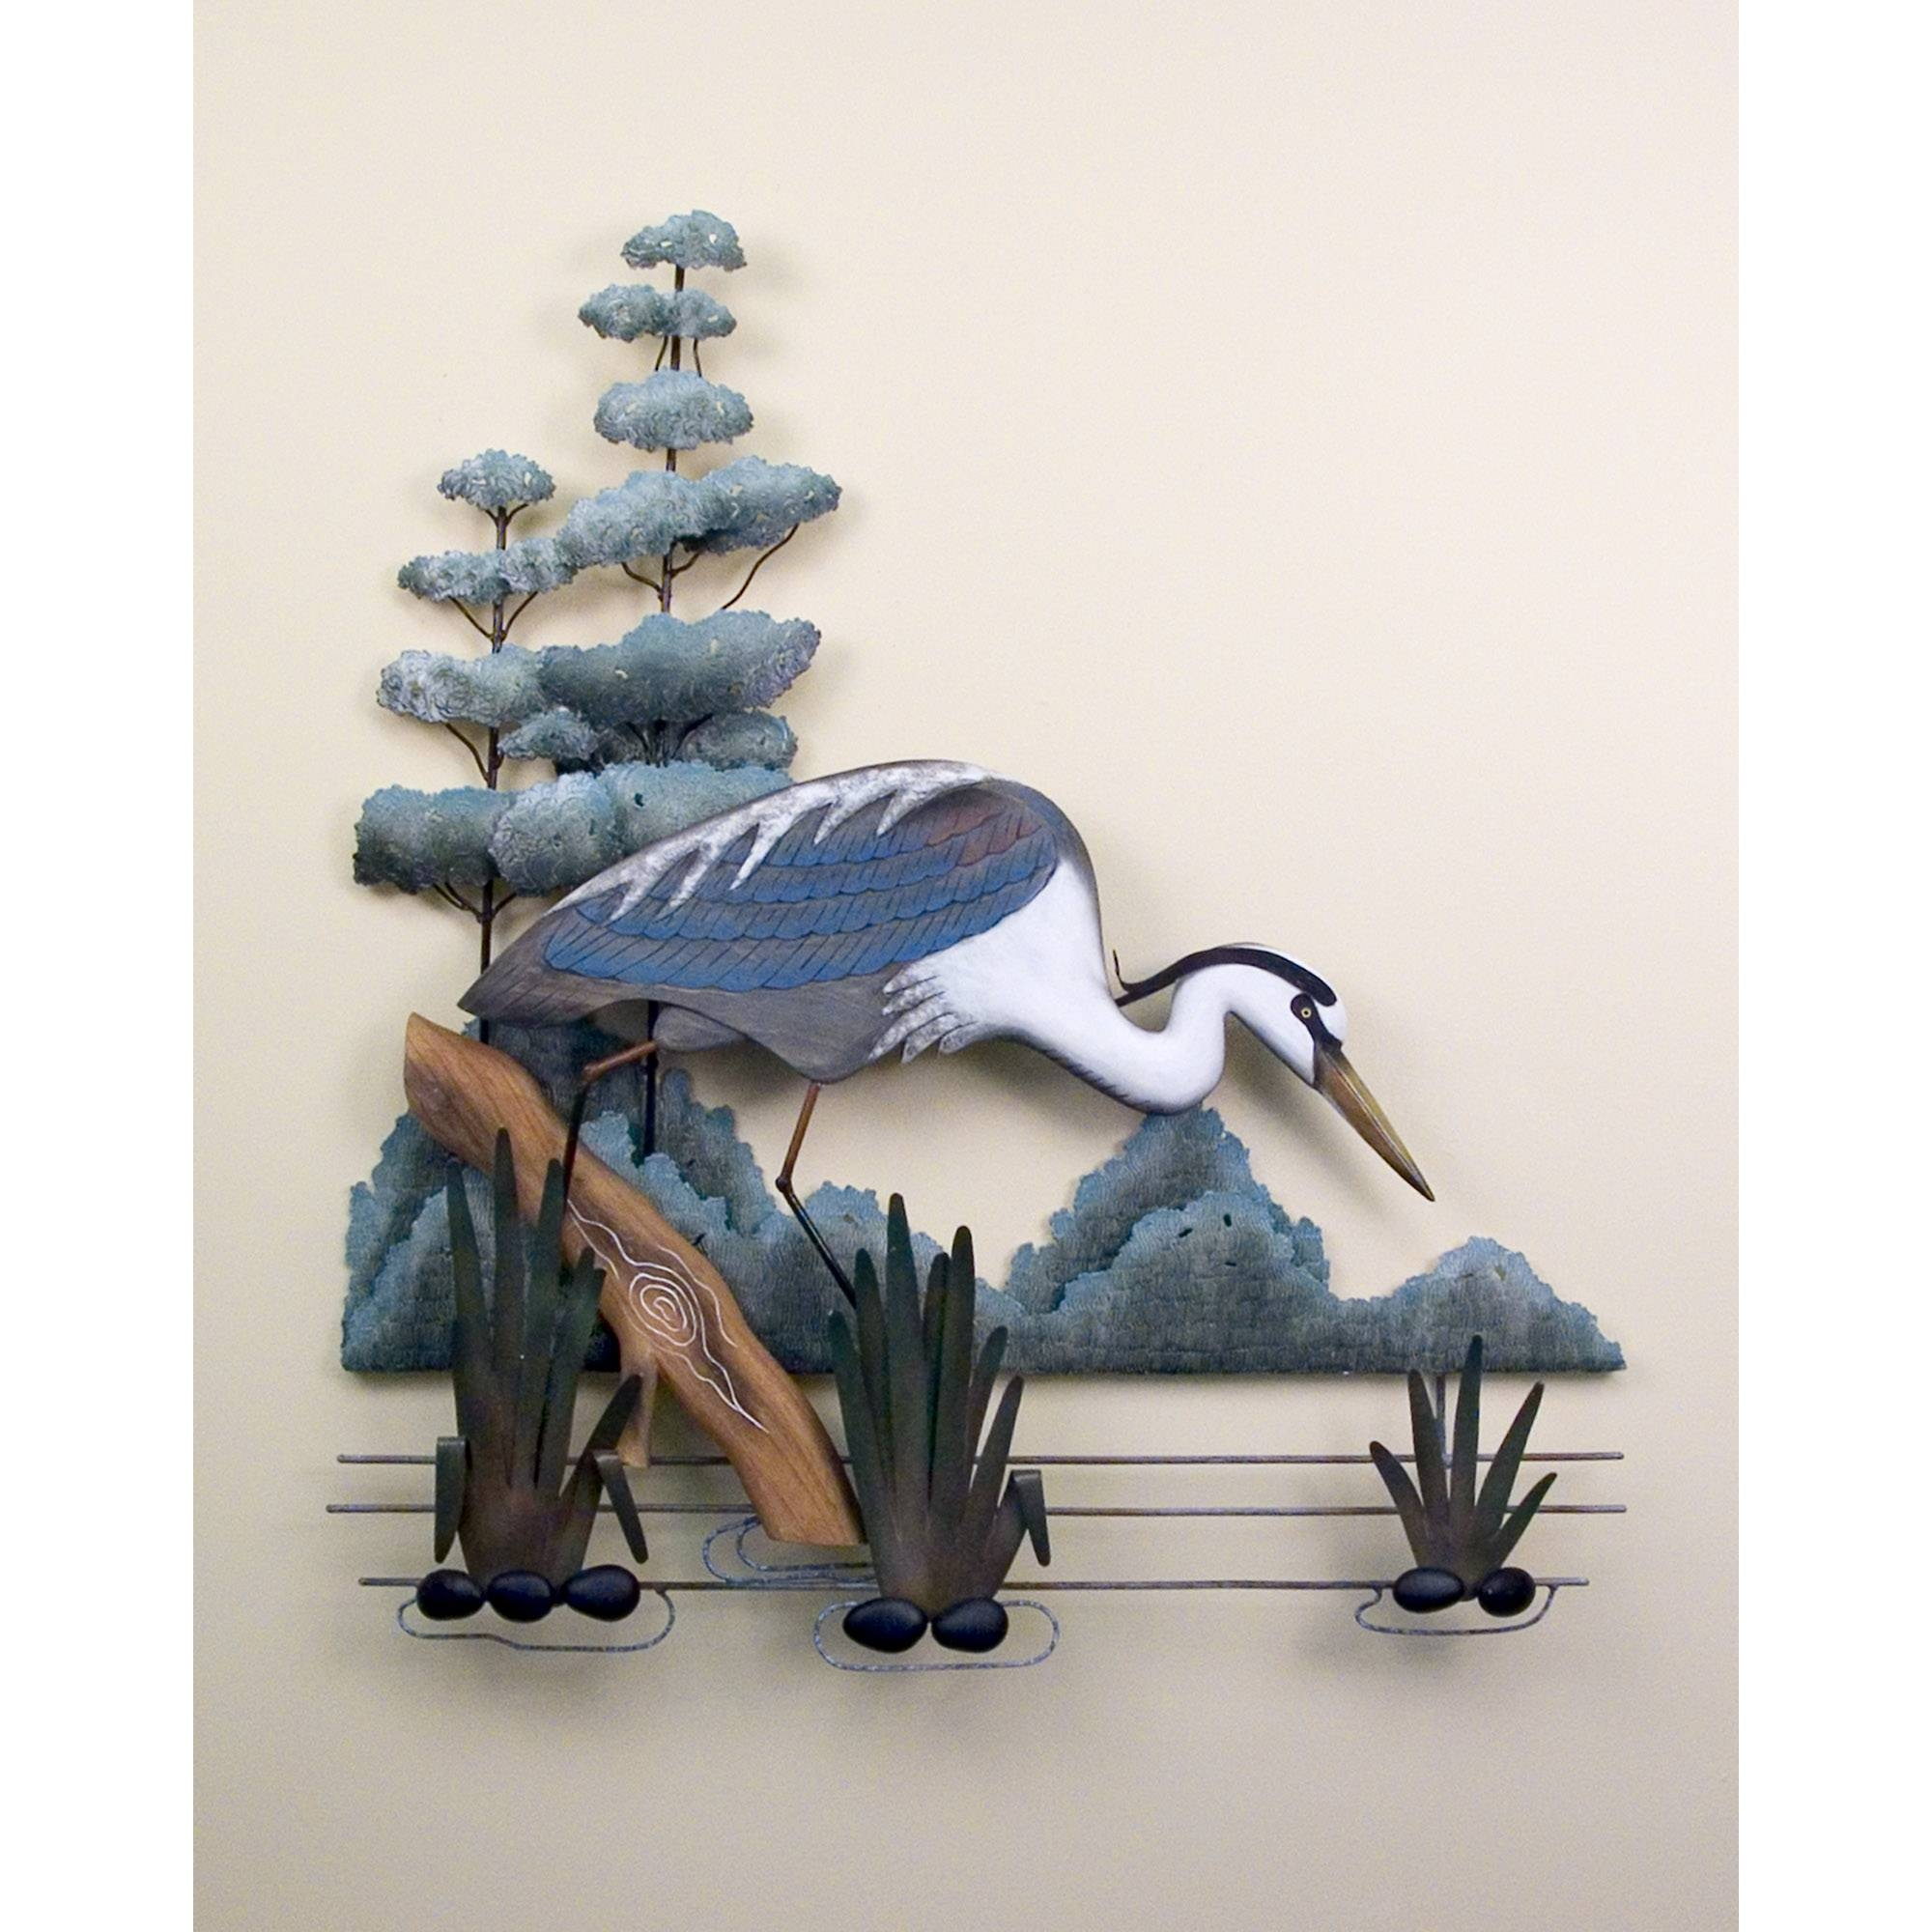 Stalking, Great Blue Heron, Wall Art, Birds, Shore, Tropical With Regard To Newest Blue Heron Metal Wall Art (Gallery 1 of 20)